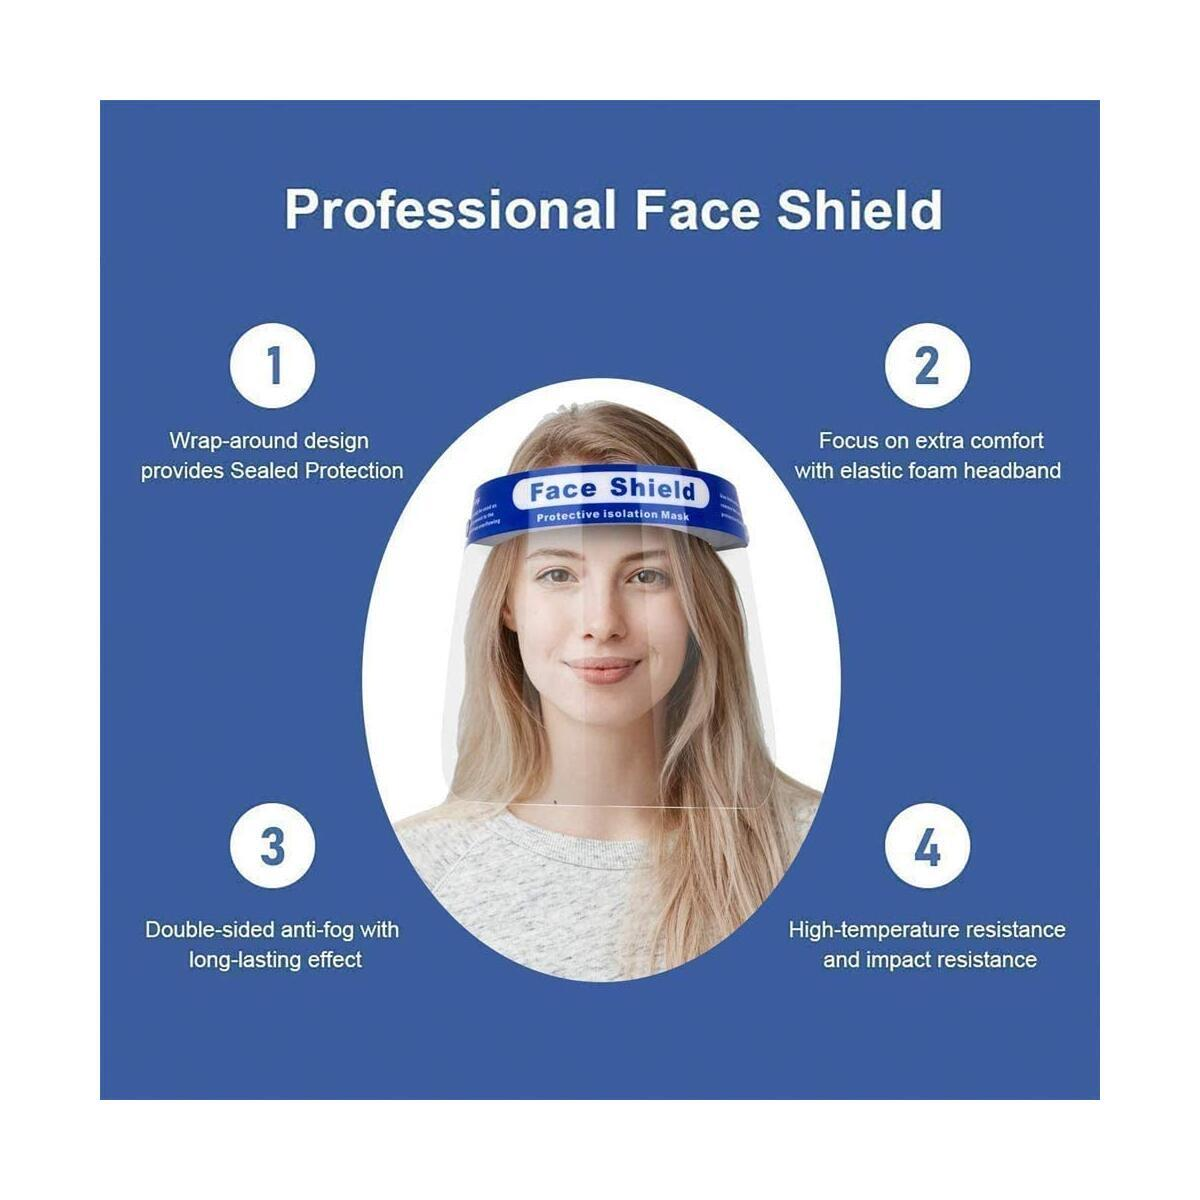 Face Shield - Plastic Face Shield, Protect Eyes and Face, Anti-Fog Work Industry Facial Cover for Men and Women, Safety Full Face Shields (4 Pack)